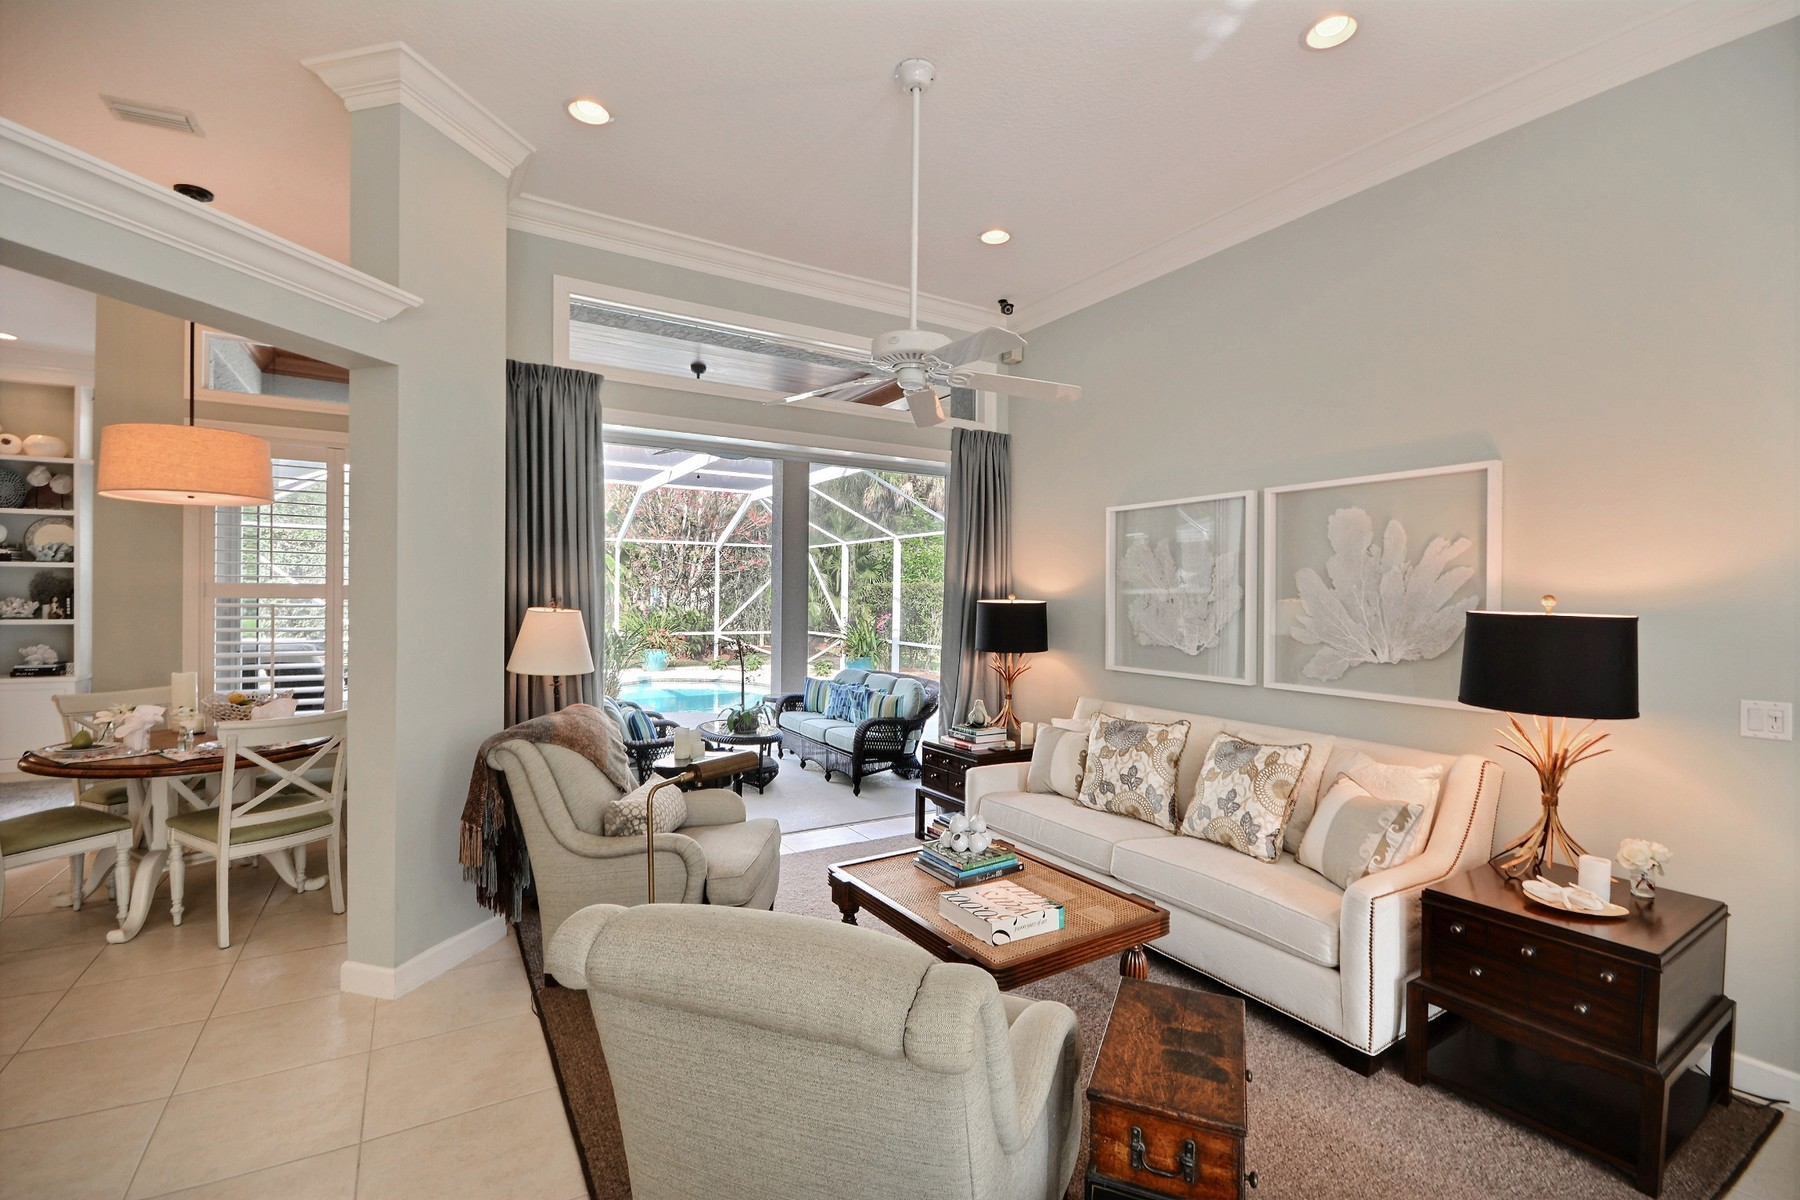 Single Family Home for Sale at Designer Showcase in Ansley Park 1165 Ansley Avenue Vero Beach, Florida, 32968 United States